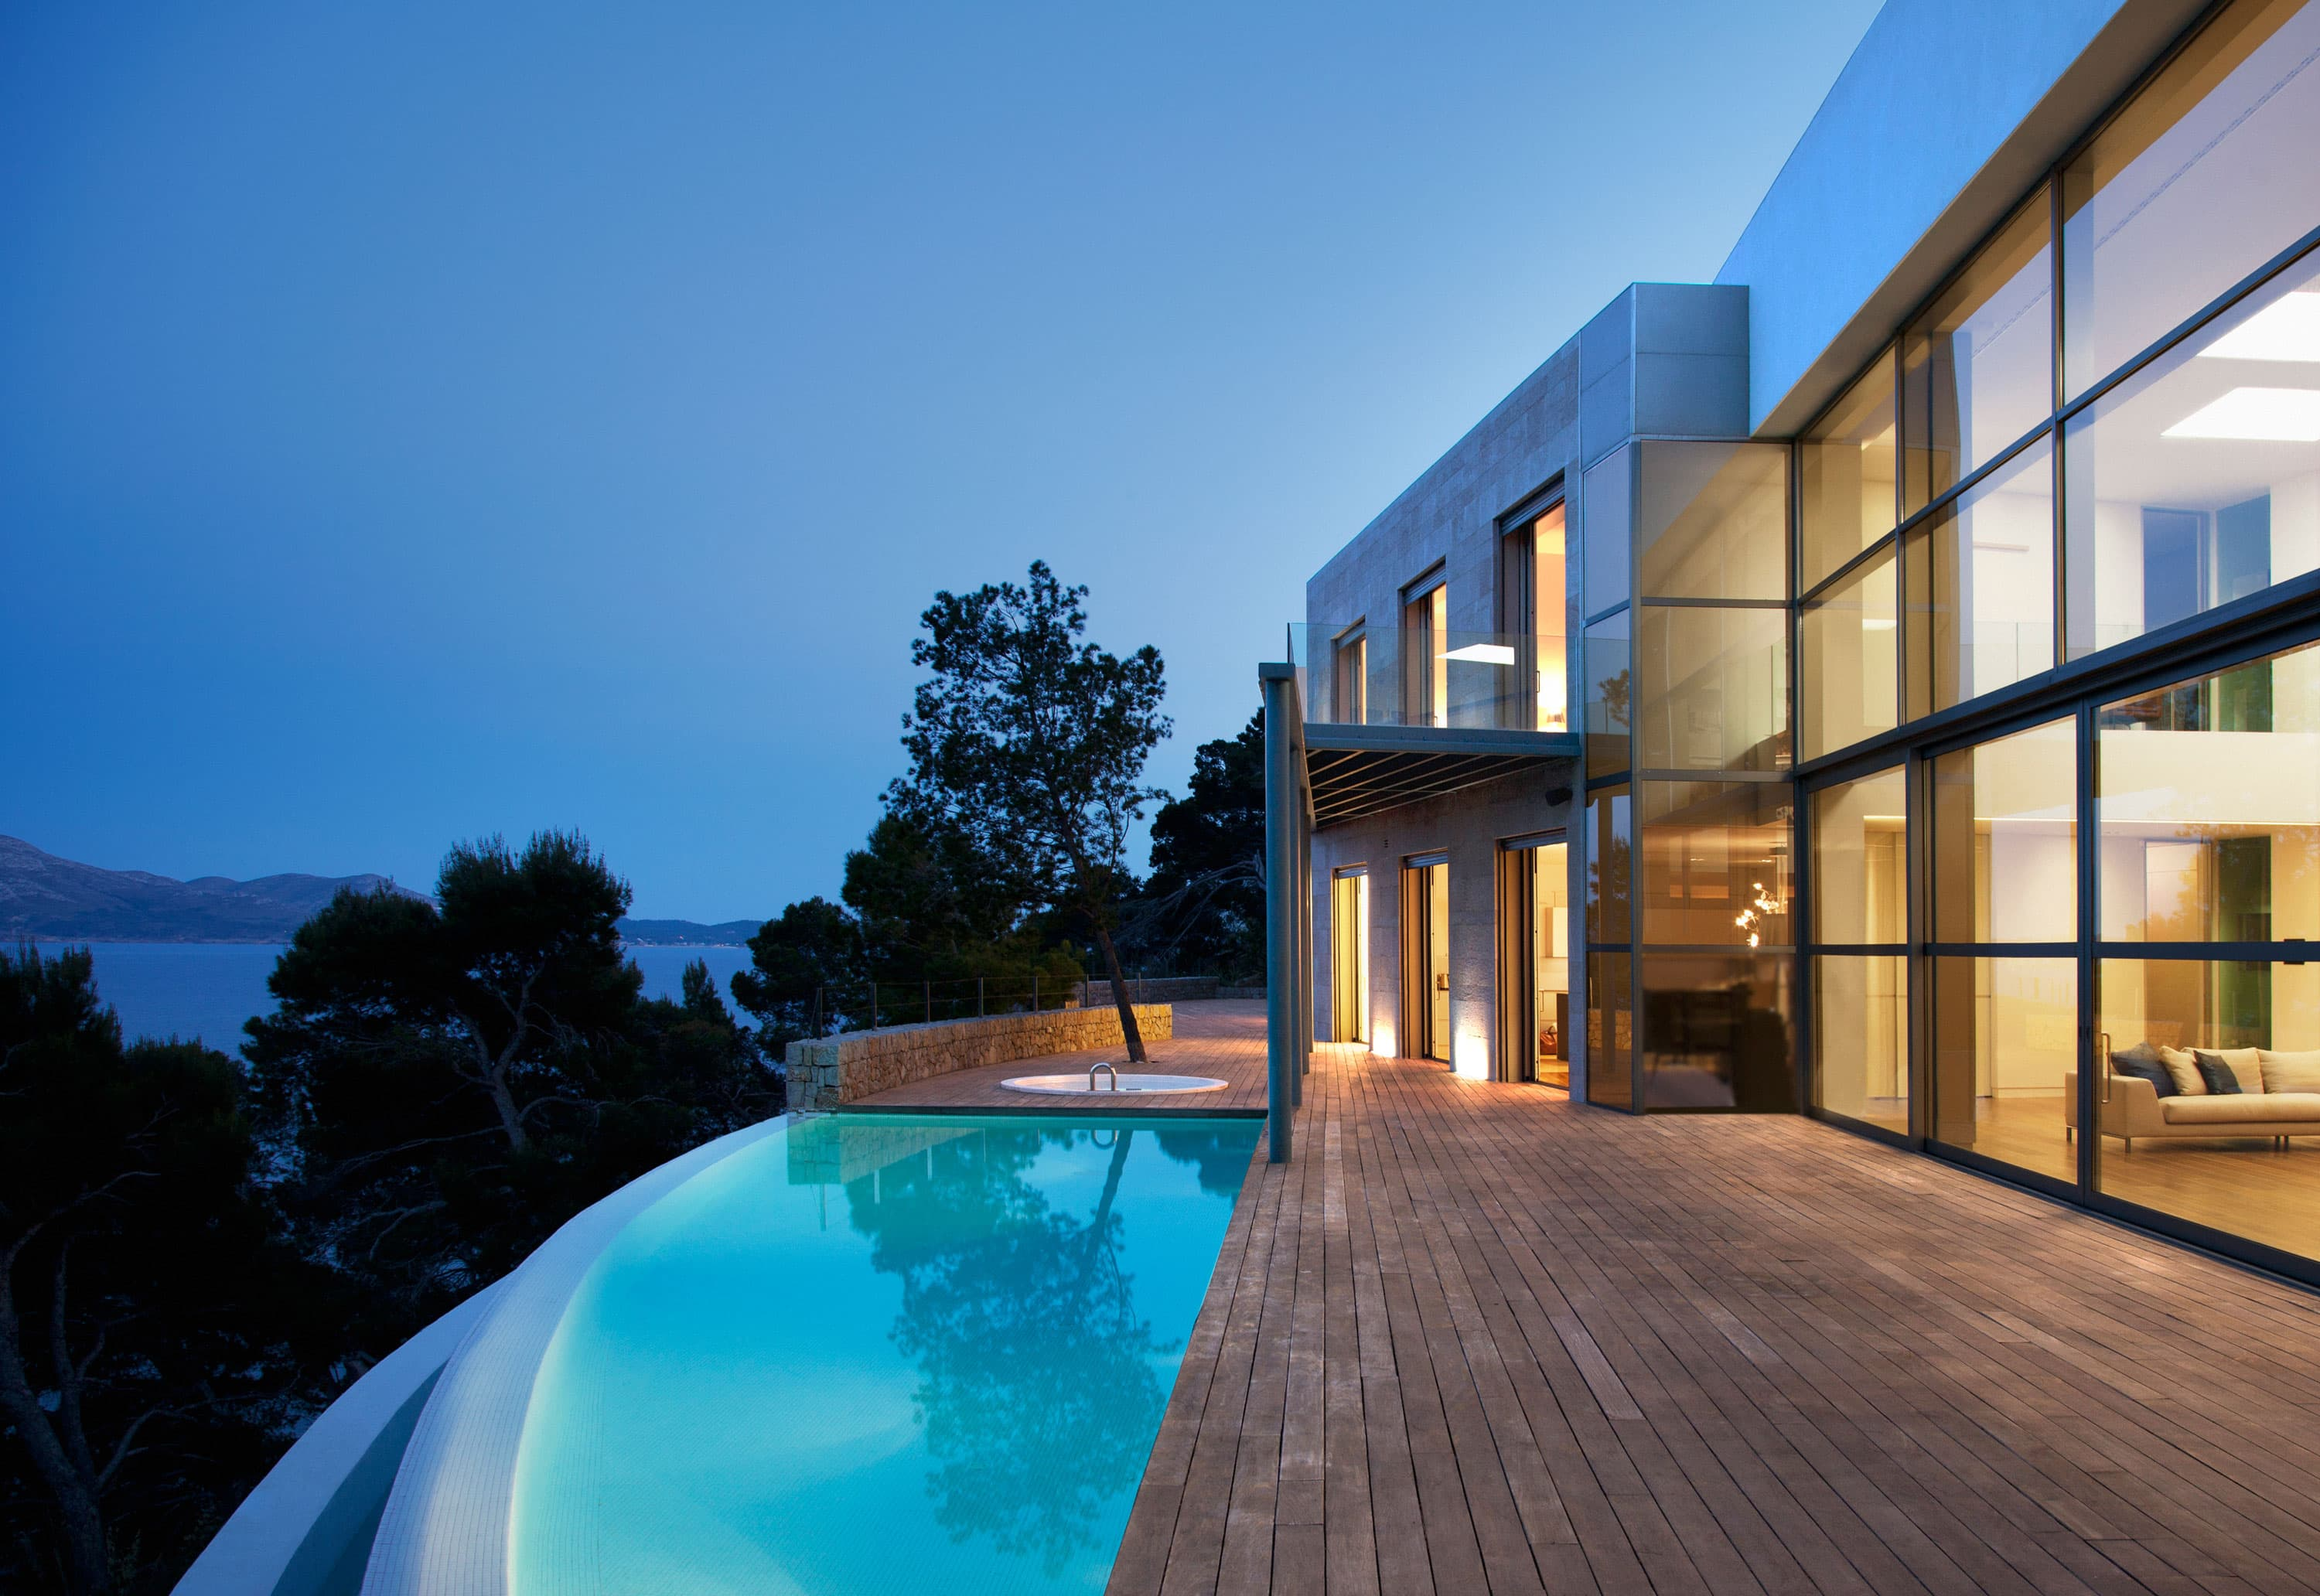 Architectural coatings that resist the elements